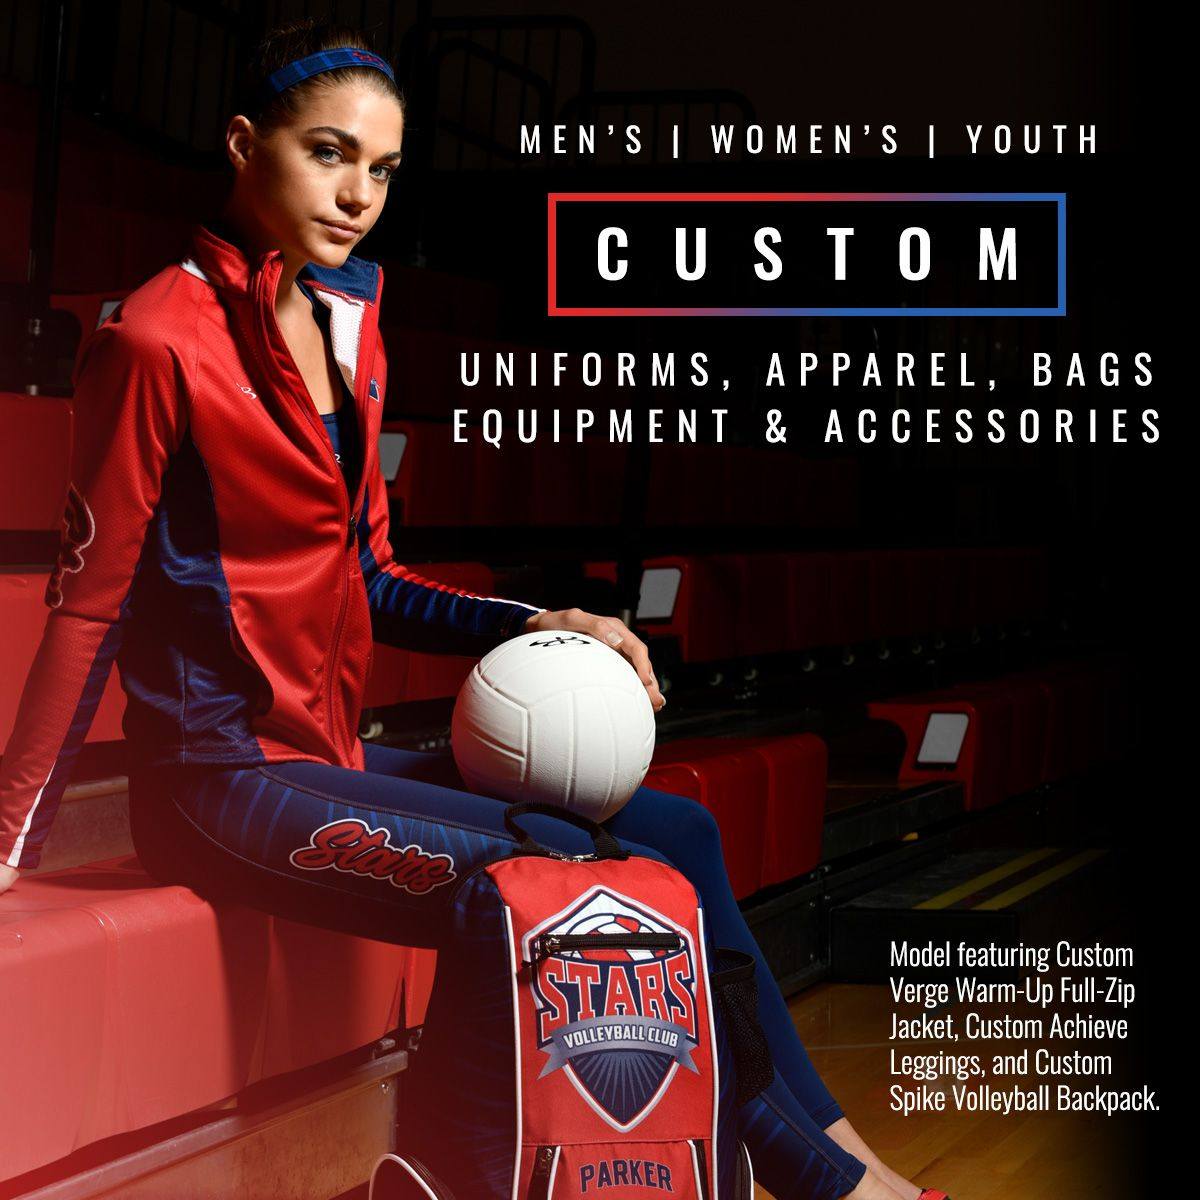 With Nearly Endless Options And Styles To Choose From Start Designing Your New Custom Gear Today Baseball Outfit Team Apparel Volleyball Gear